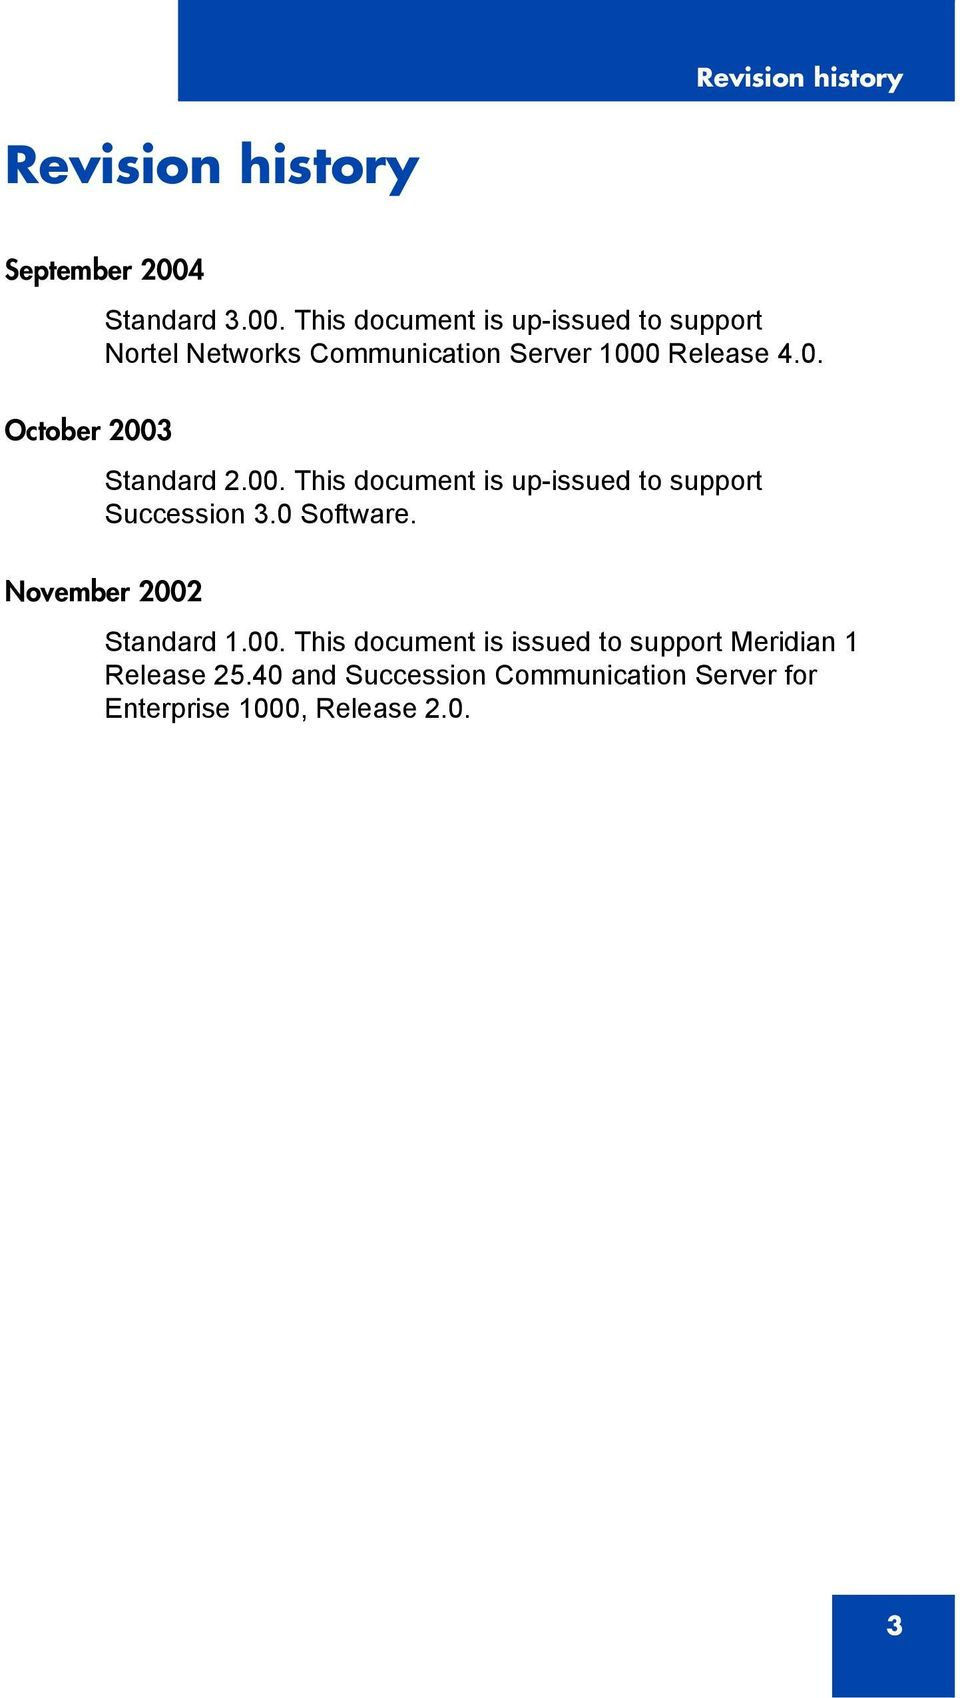 This document is up-issued to support Nortel Networks Communication Server 100